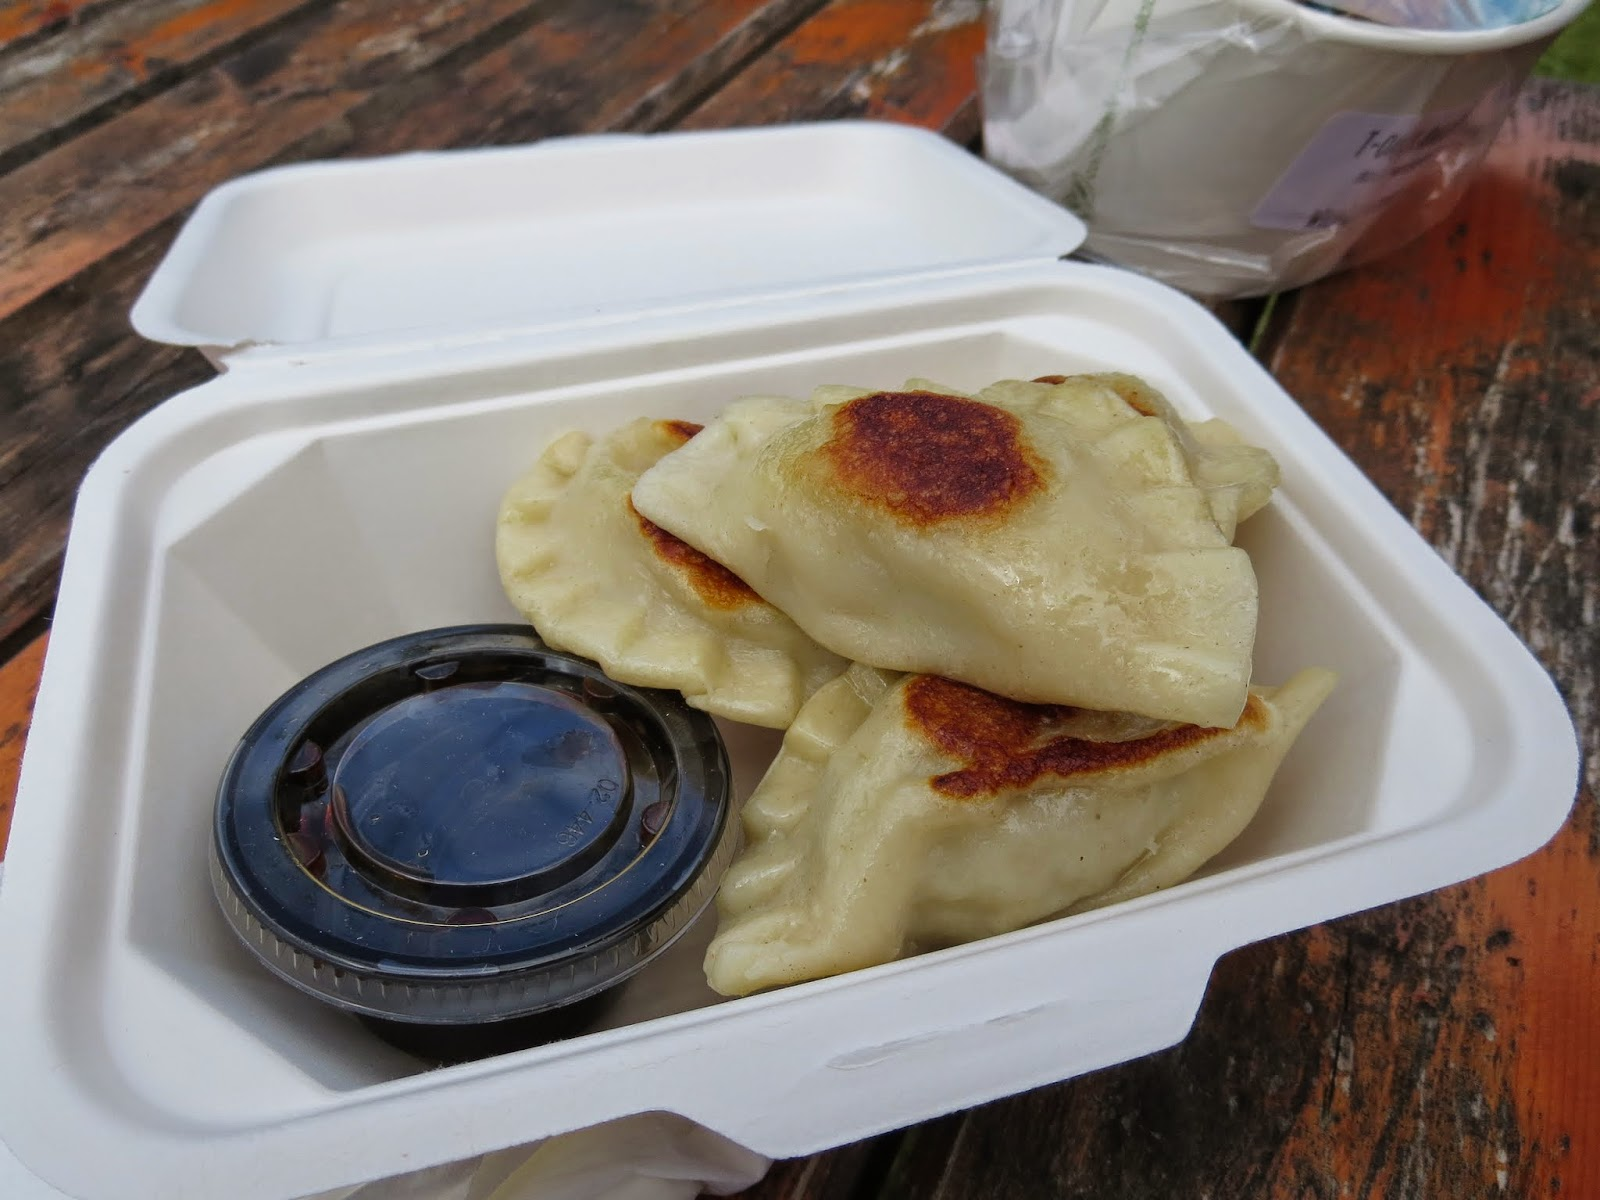 Pierogis at the Marlay Park food market in Dublin